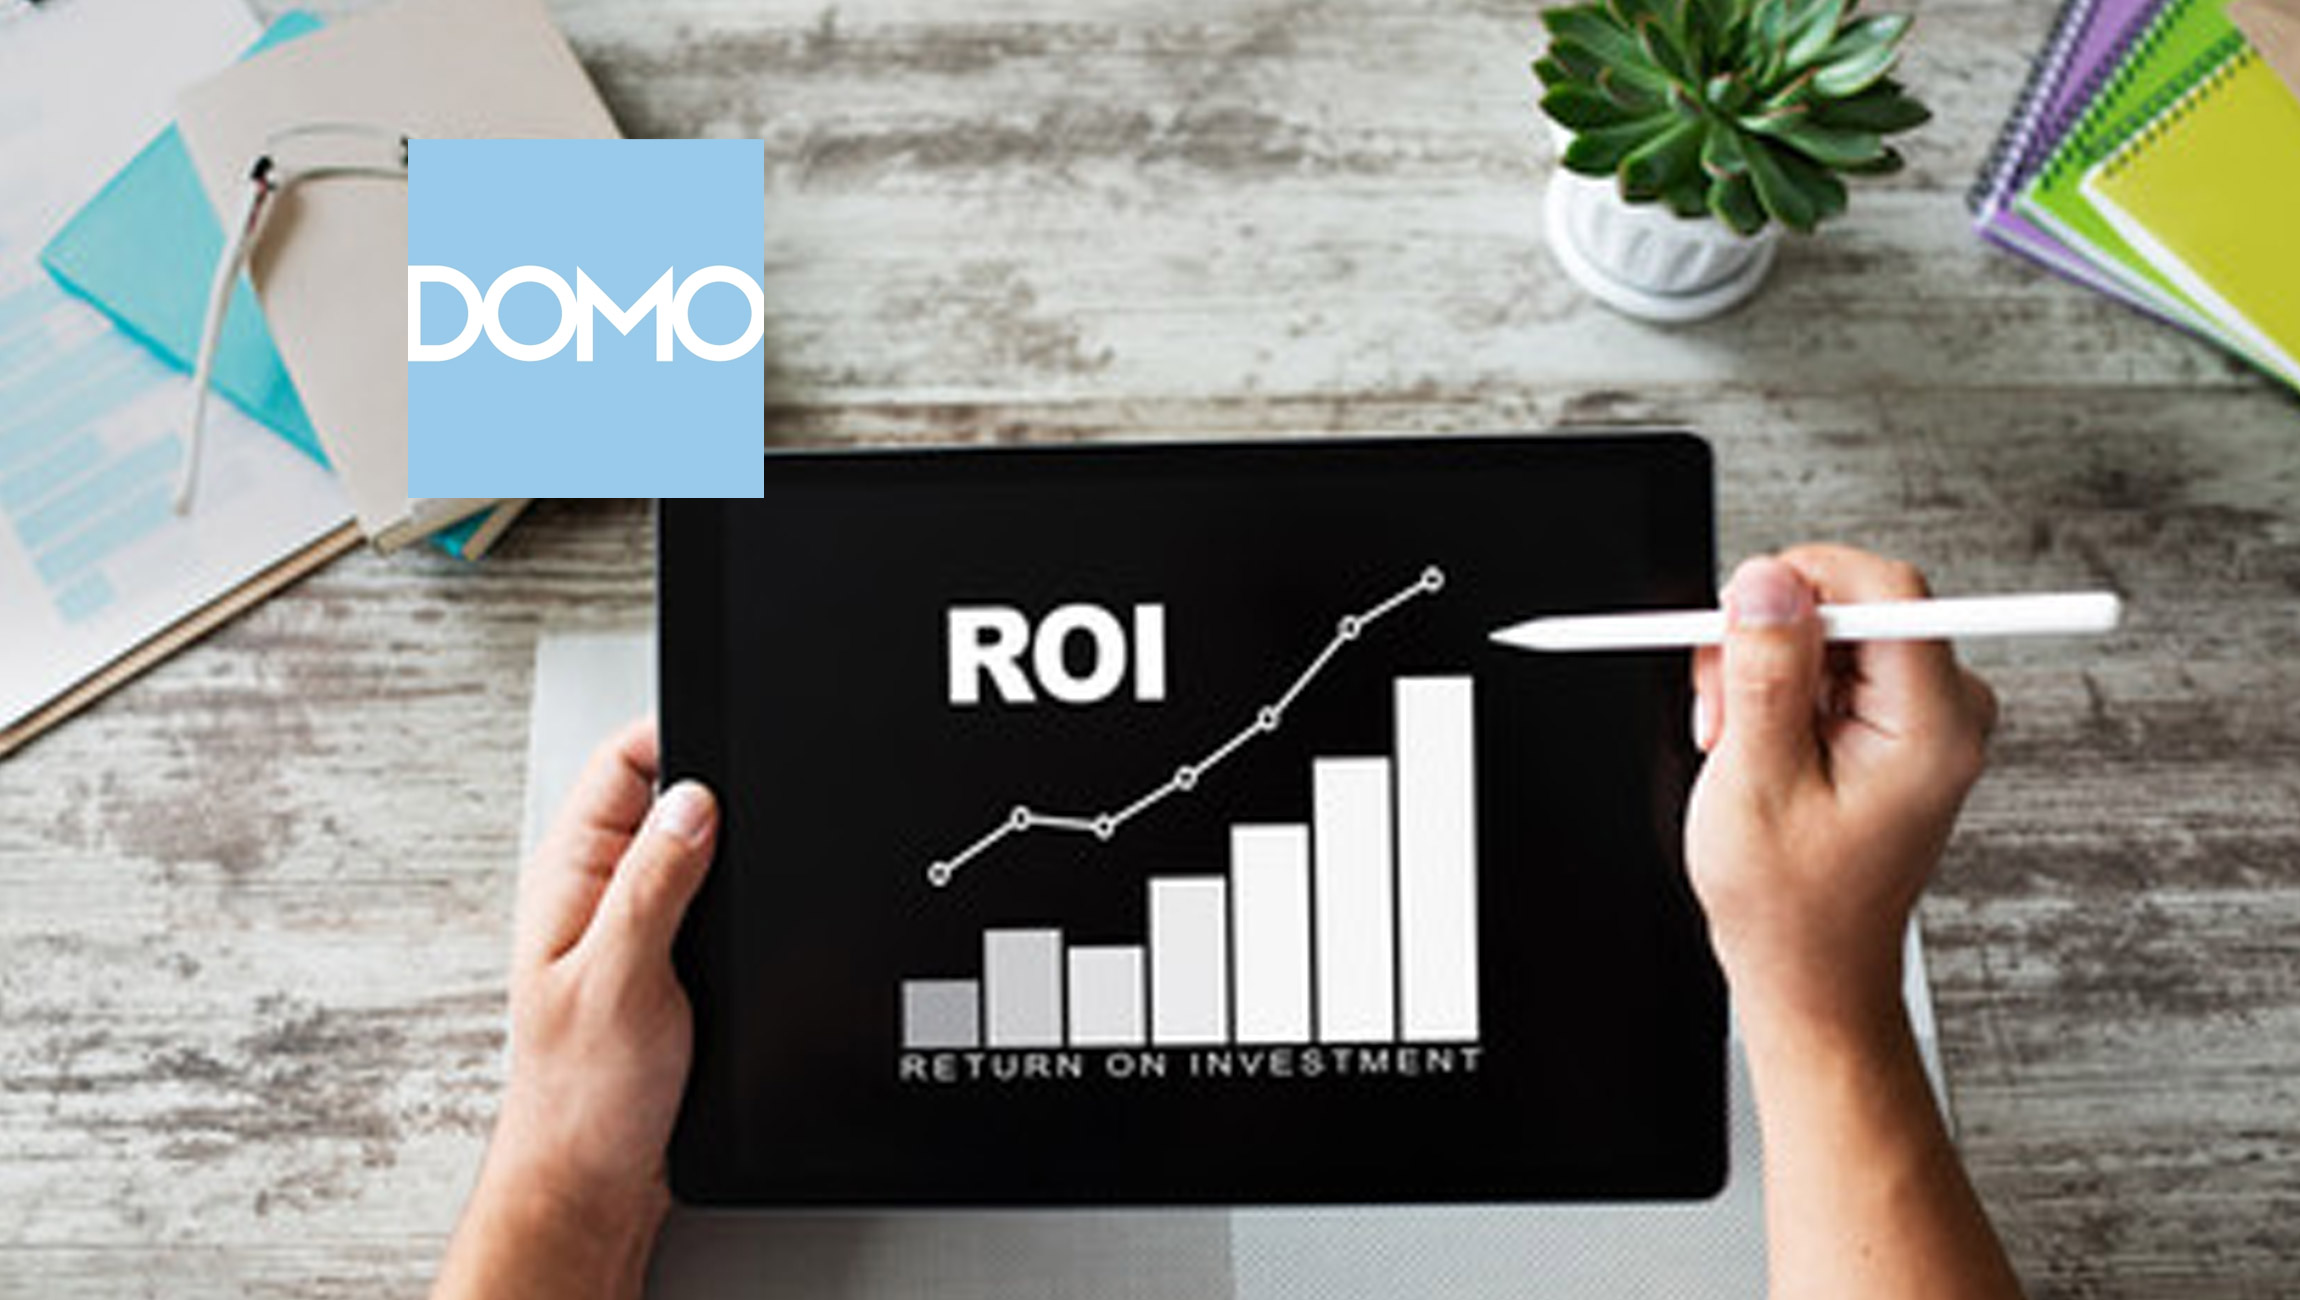 Domo-Delivers-an-ROI-of-345-Percent-According-to-Independent-Research-Firm-Analysis